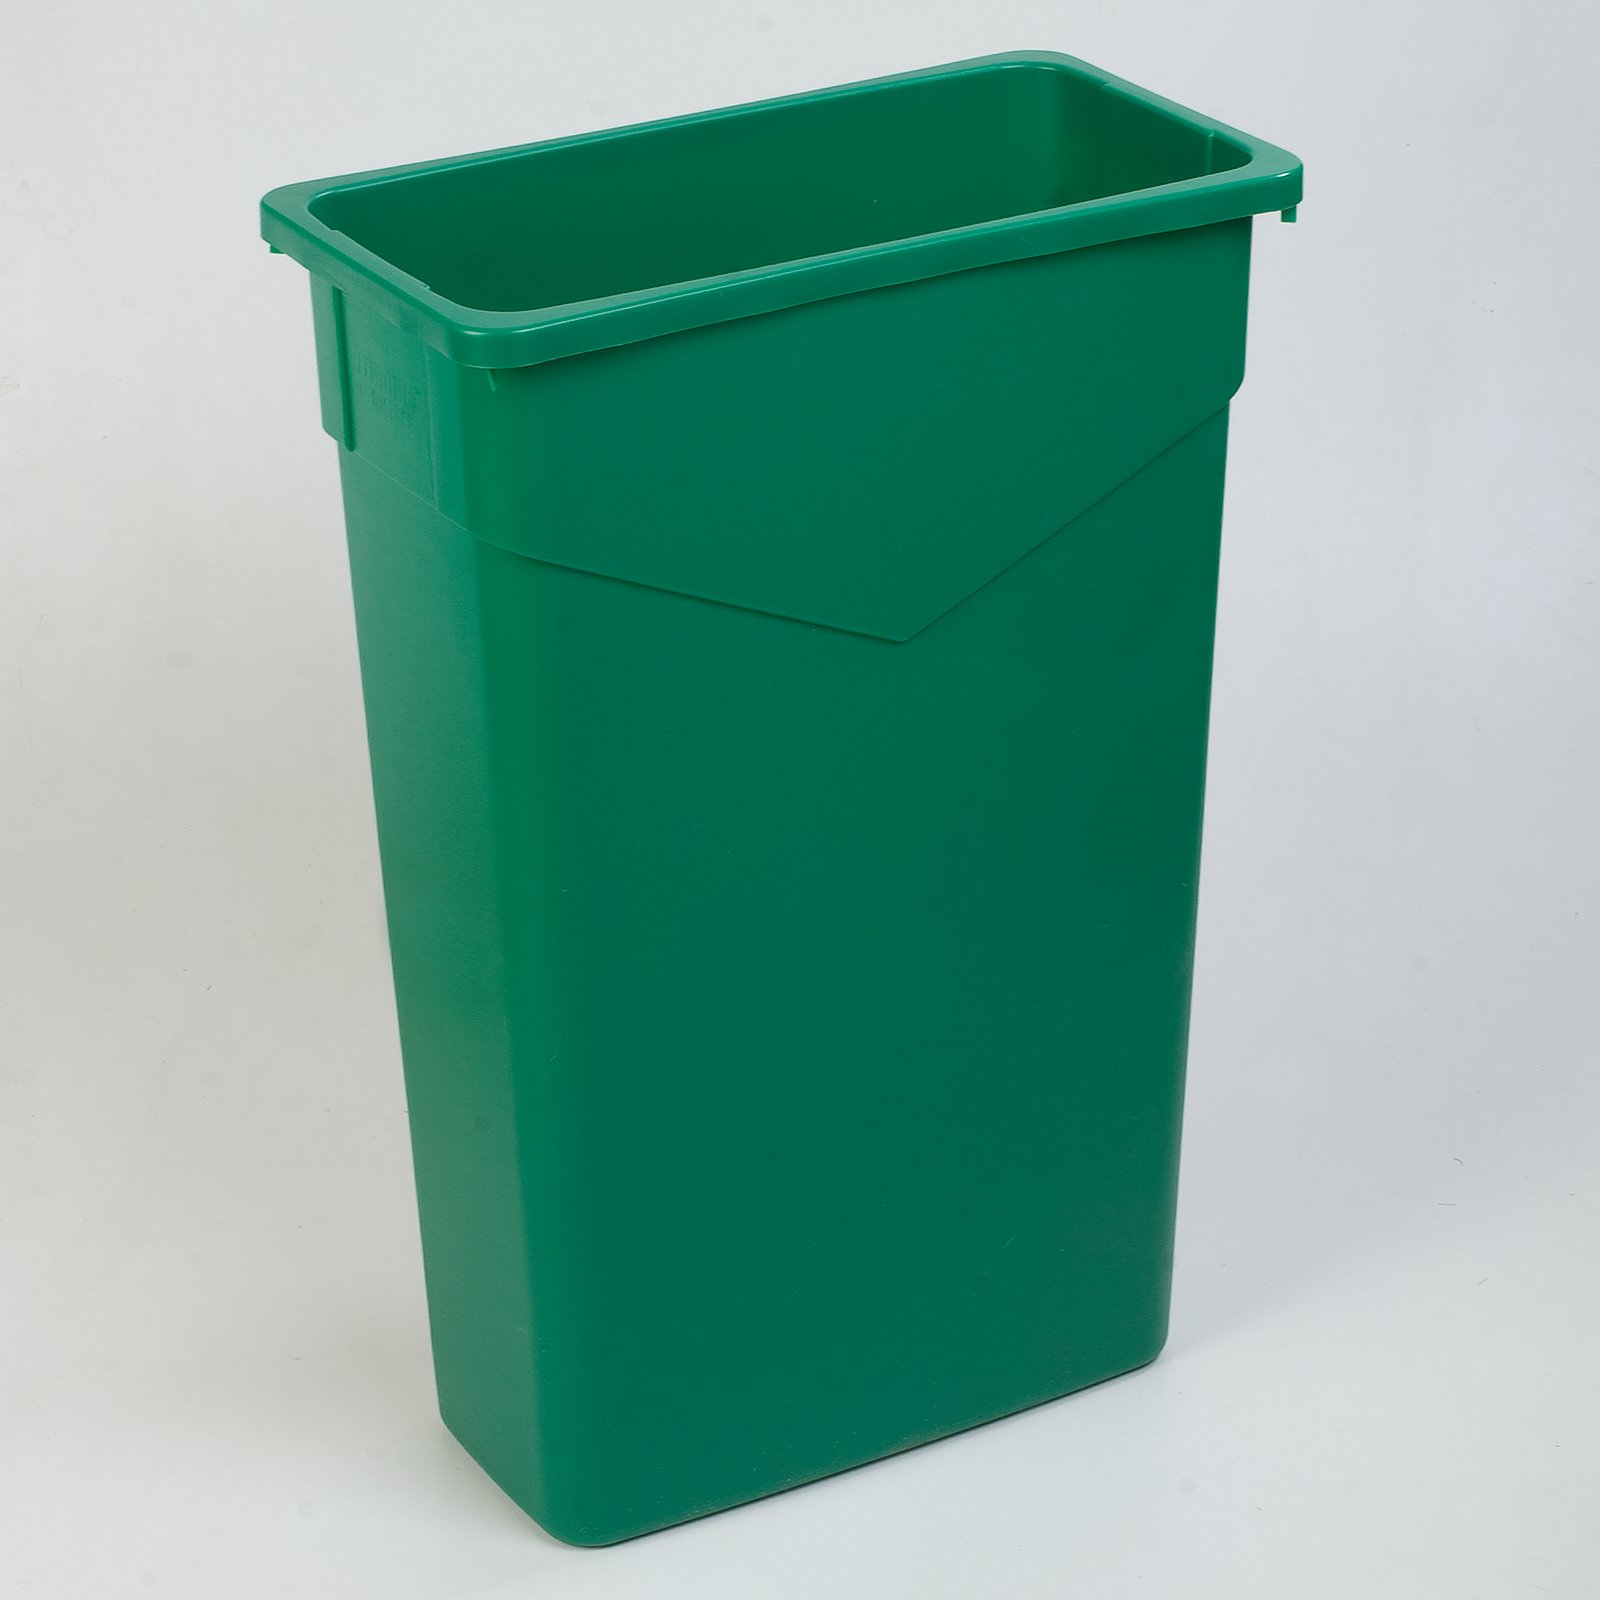 34202309 trimline rectangle waste container trash can 23 gallon green carlisle - Rectangular garbage cans ...